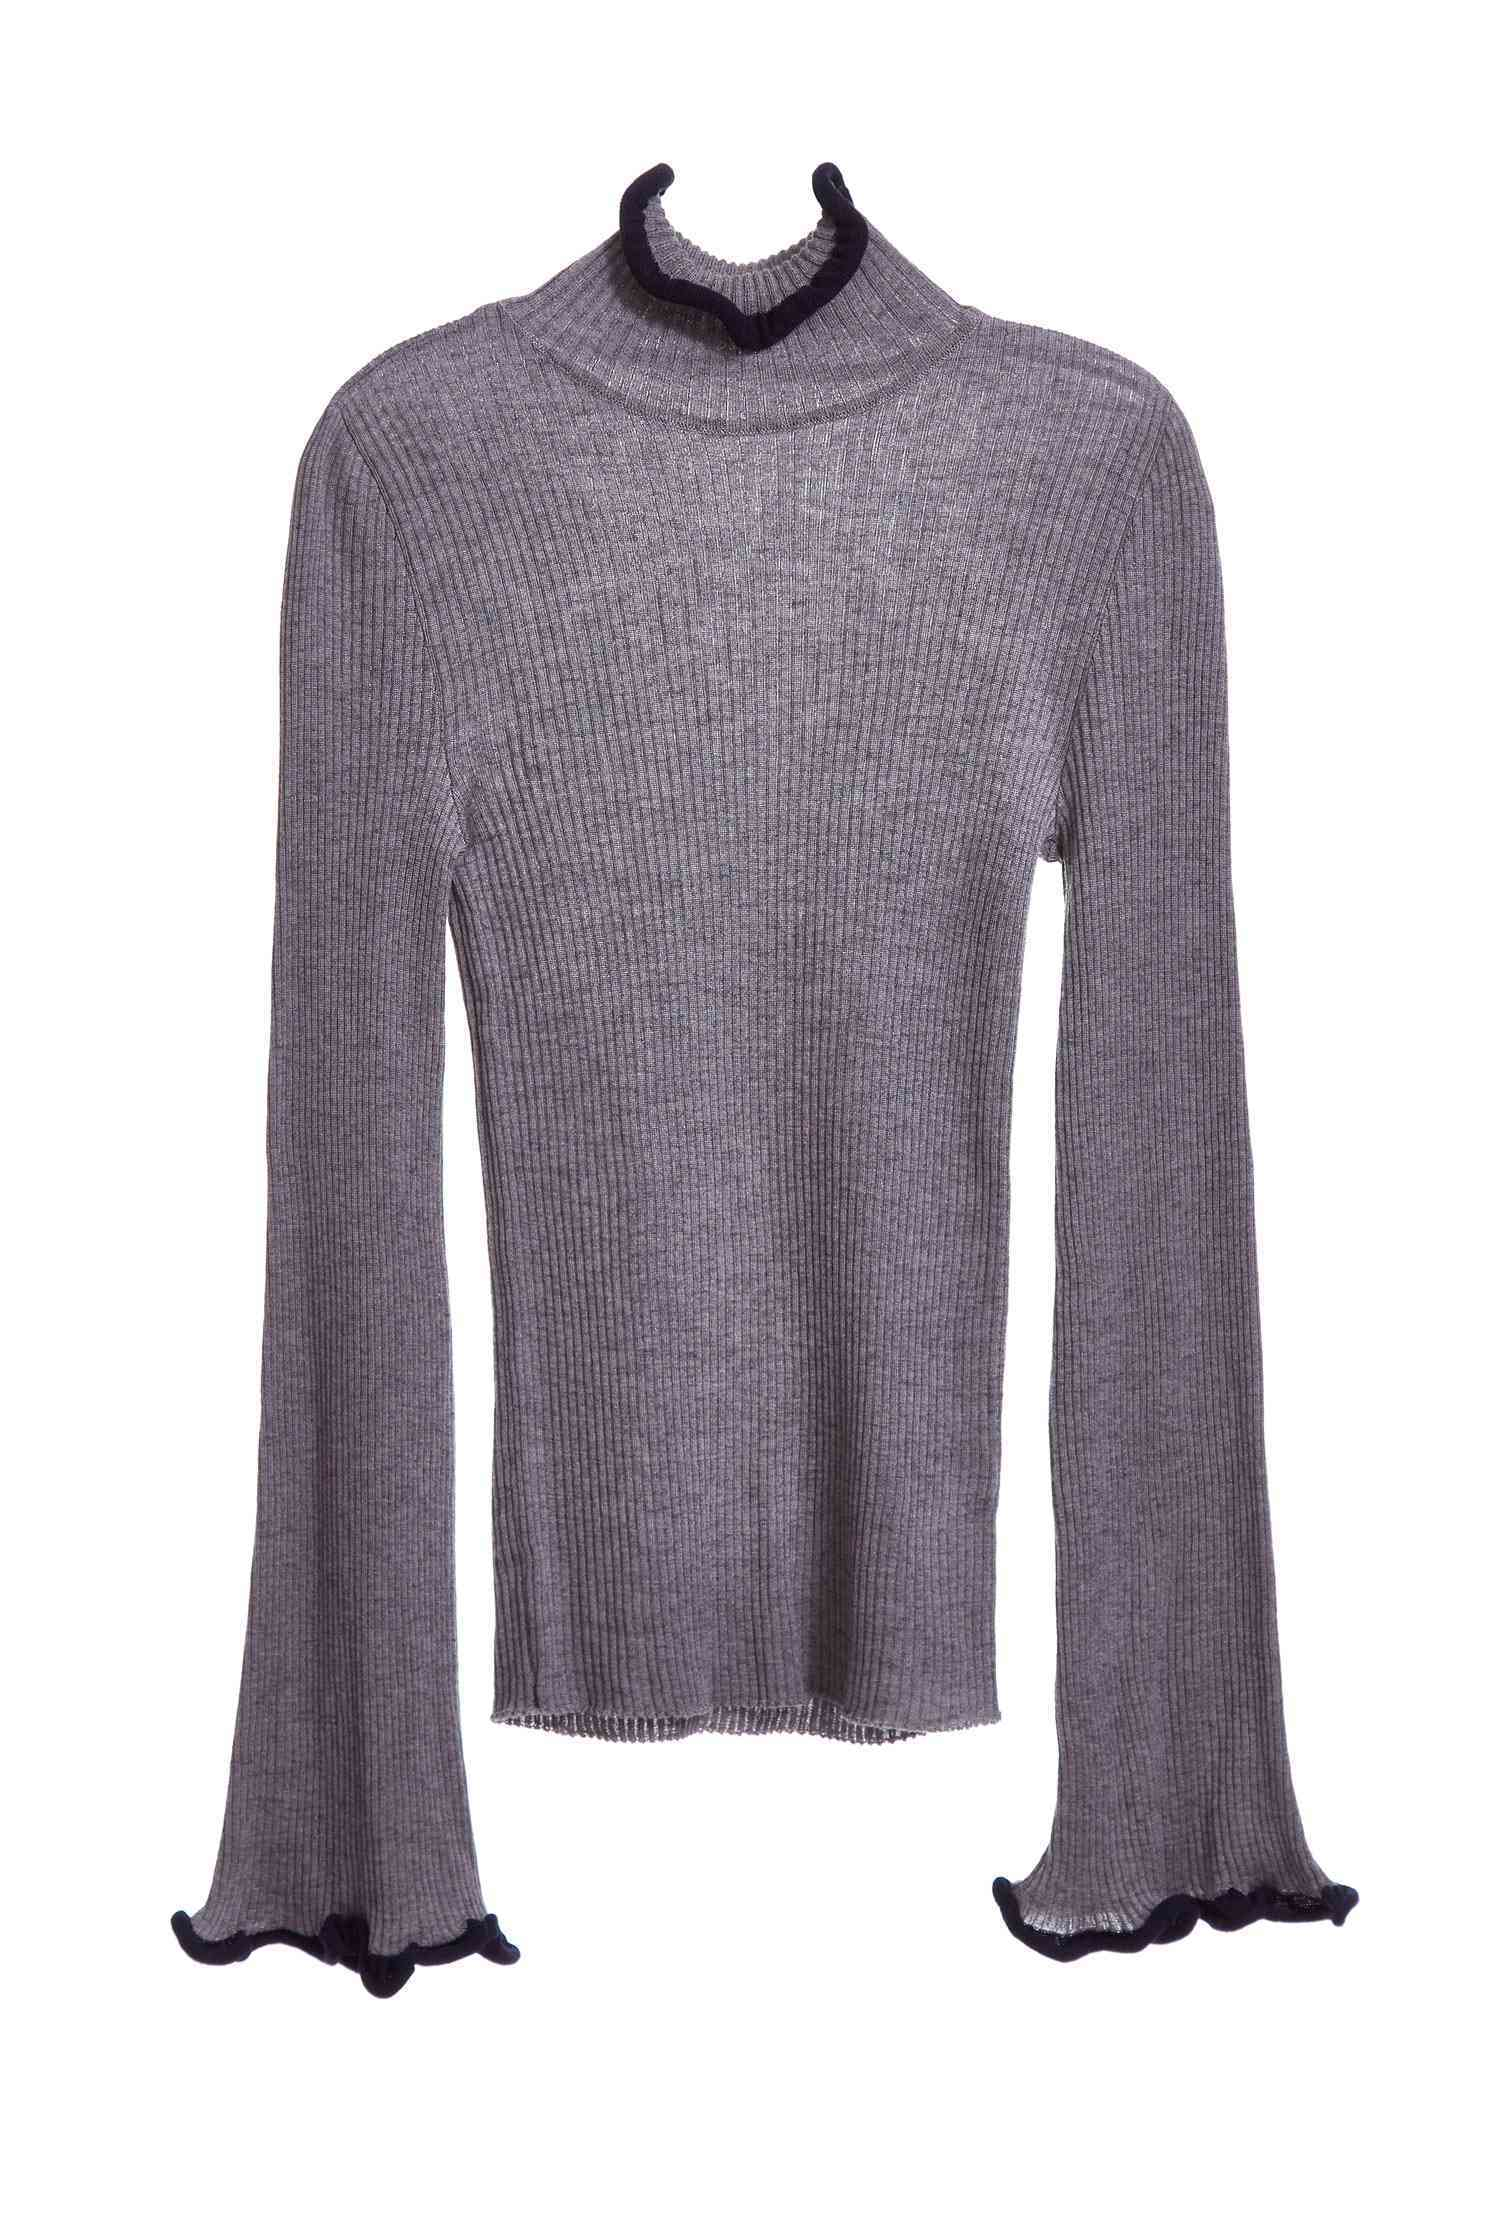 Wavy style knit long sleeve top,top,knitting,knittedtop,knittedtop,longsleevetop